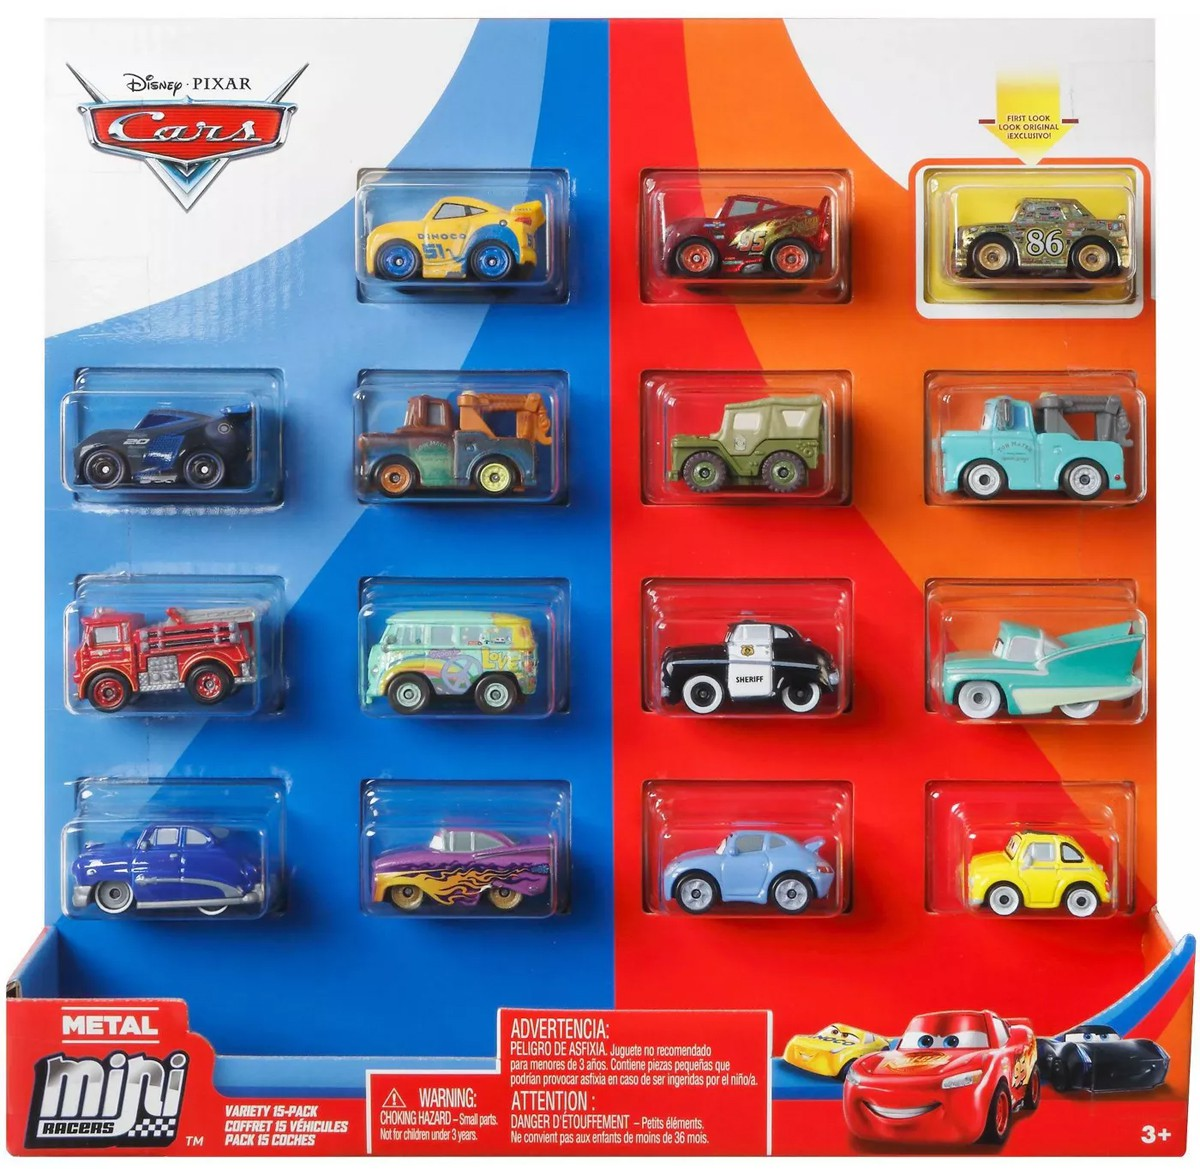 Disney Pixar Cars Die Cast Metal Mini Racers Variety Car 15 Pack